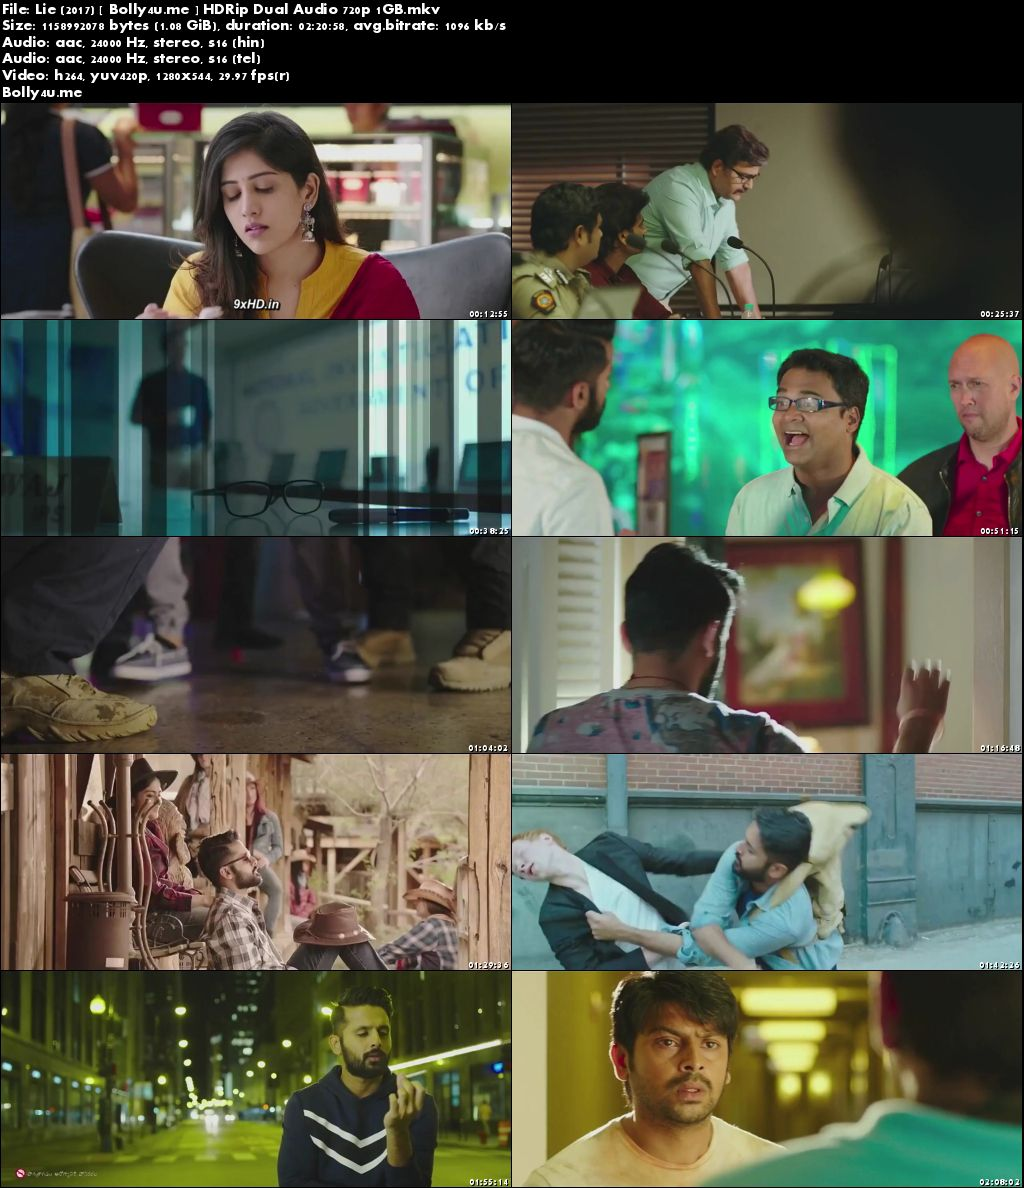 LIE 2017 HDRip UNCUT 450Mb Hindi Dubbed Dual Audio 480p ESub Download